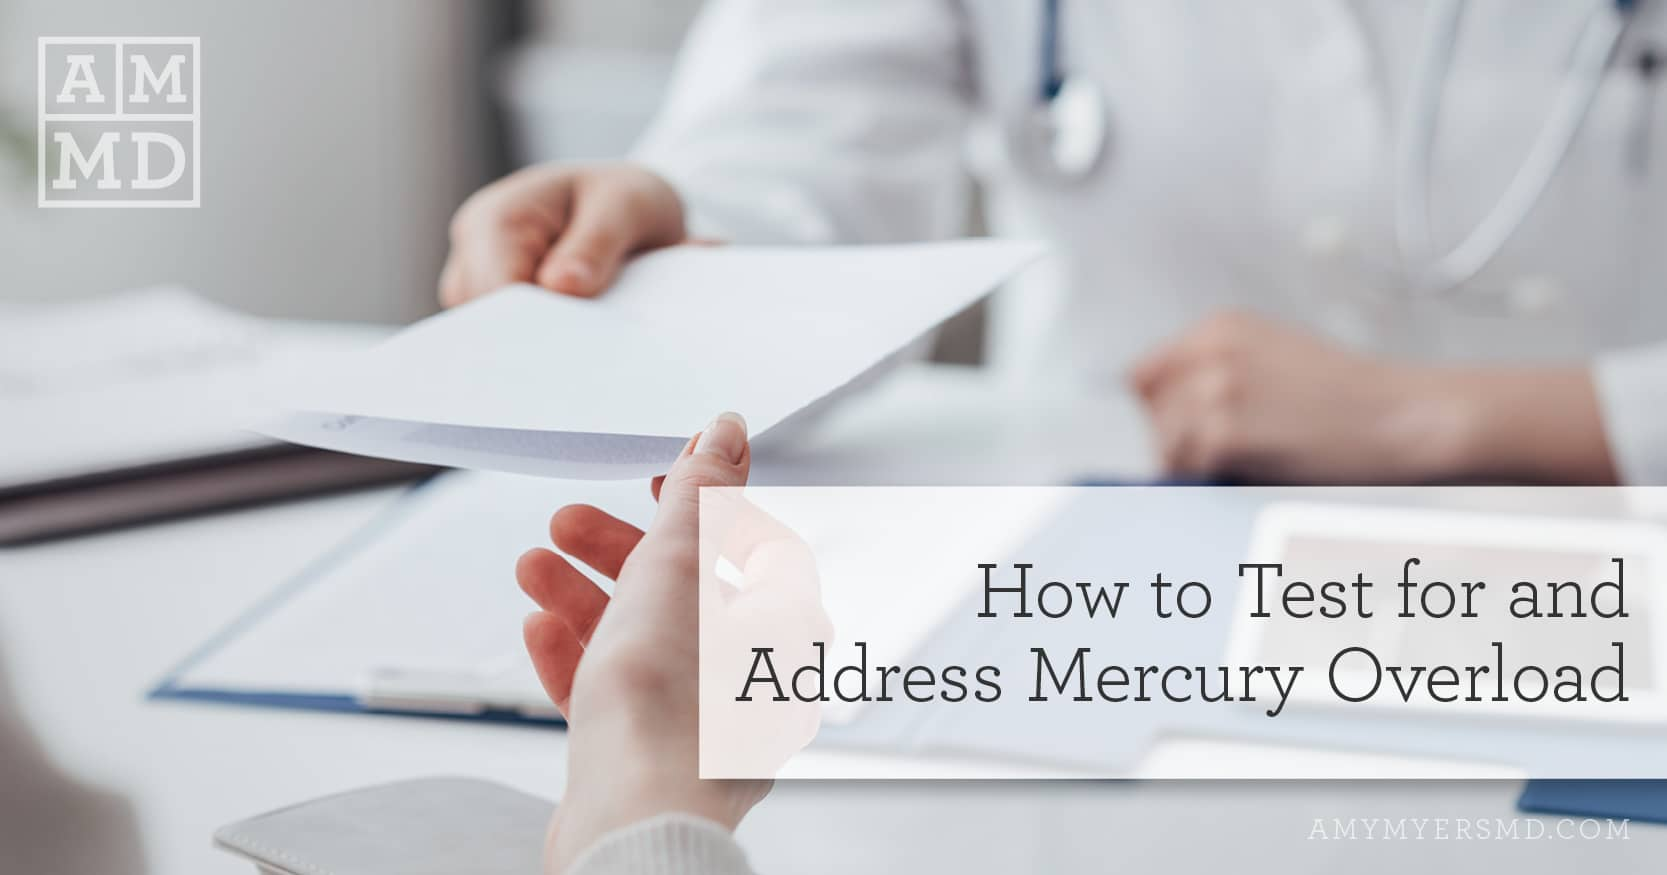 How to Test for and Address Mercury Overload - Doctor Delivering Test Results - Featured Image - Amy Myers MD